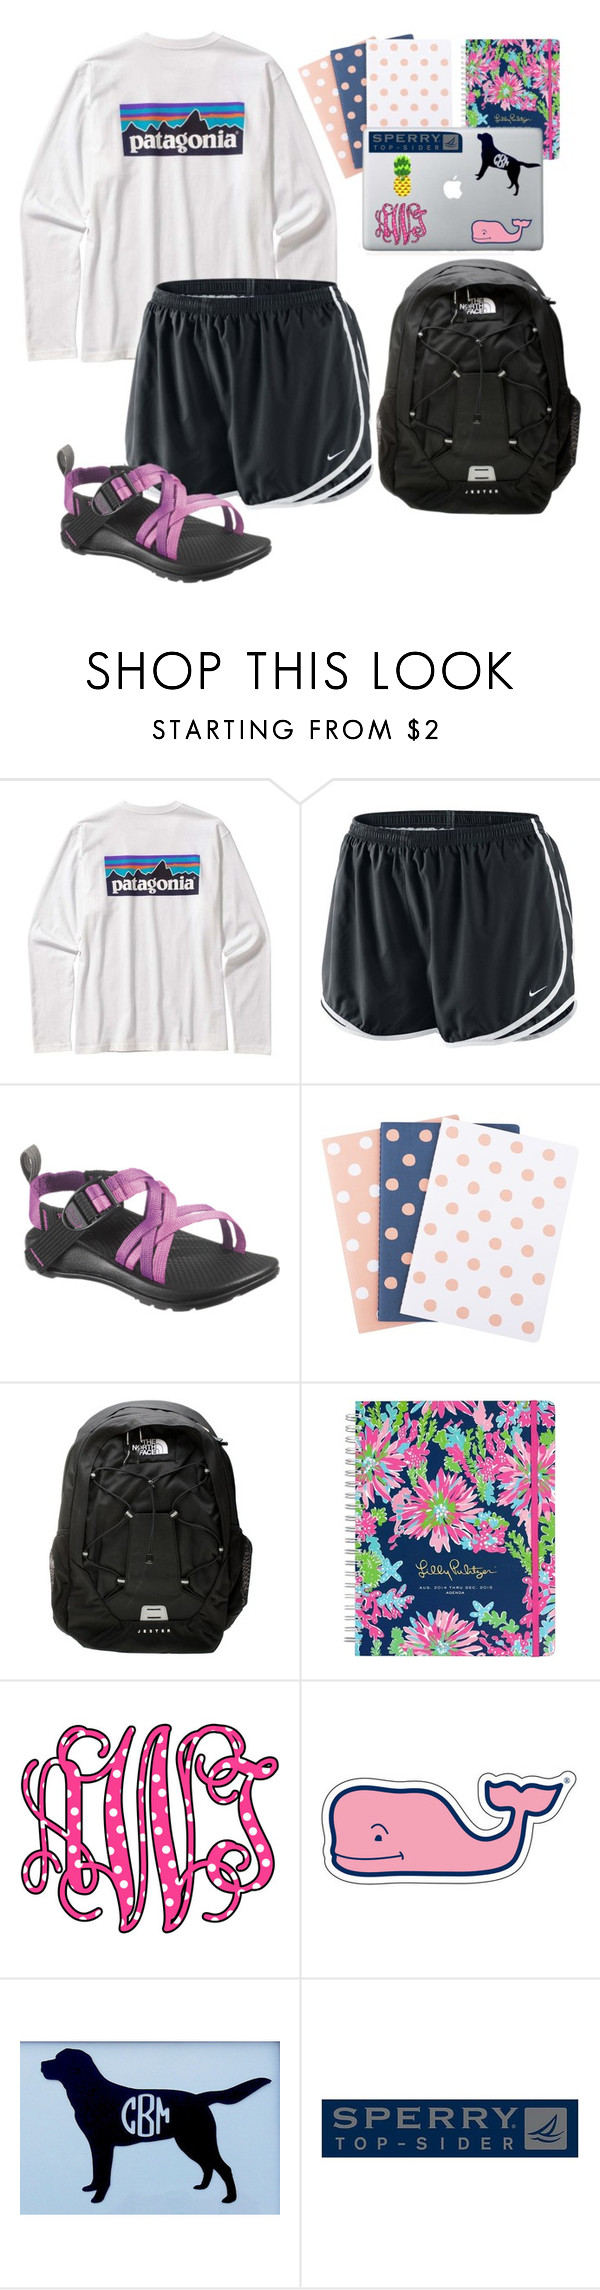 School (eck) by sassy-prep on Polyvore featuring NIKE, The North Face, Patagonia, Lilly Pulitzer, Sperry Top-Sider, Vineyard Vines, women's clothing, women's fashion, women and female